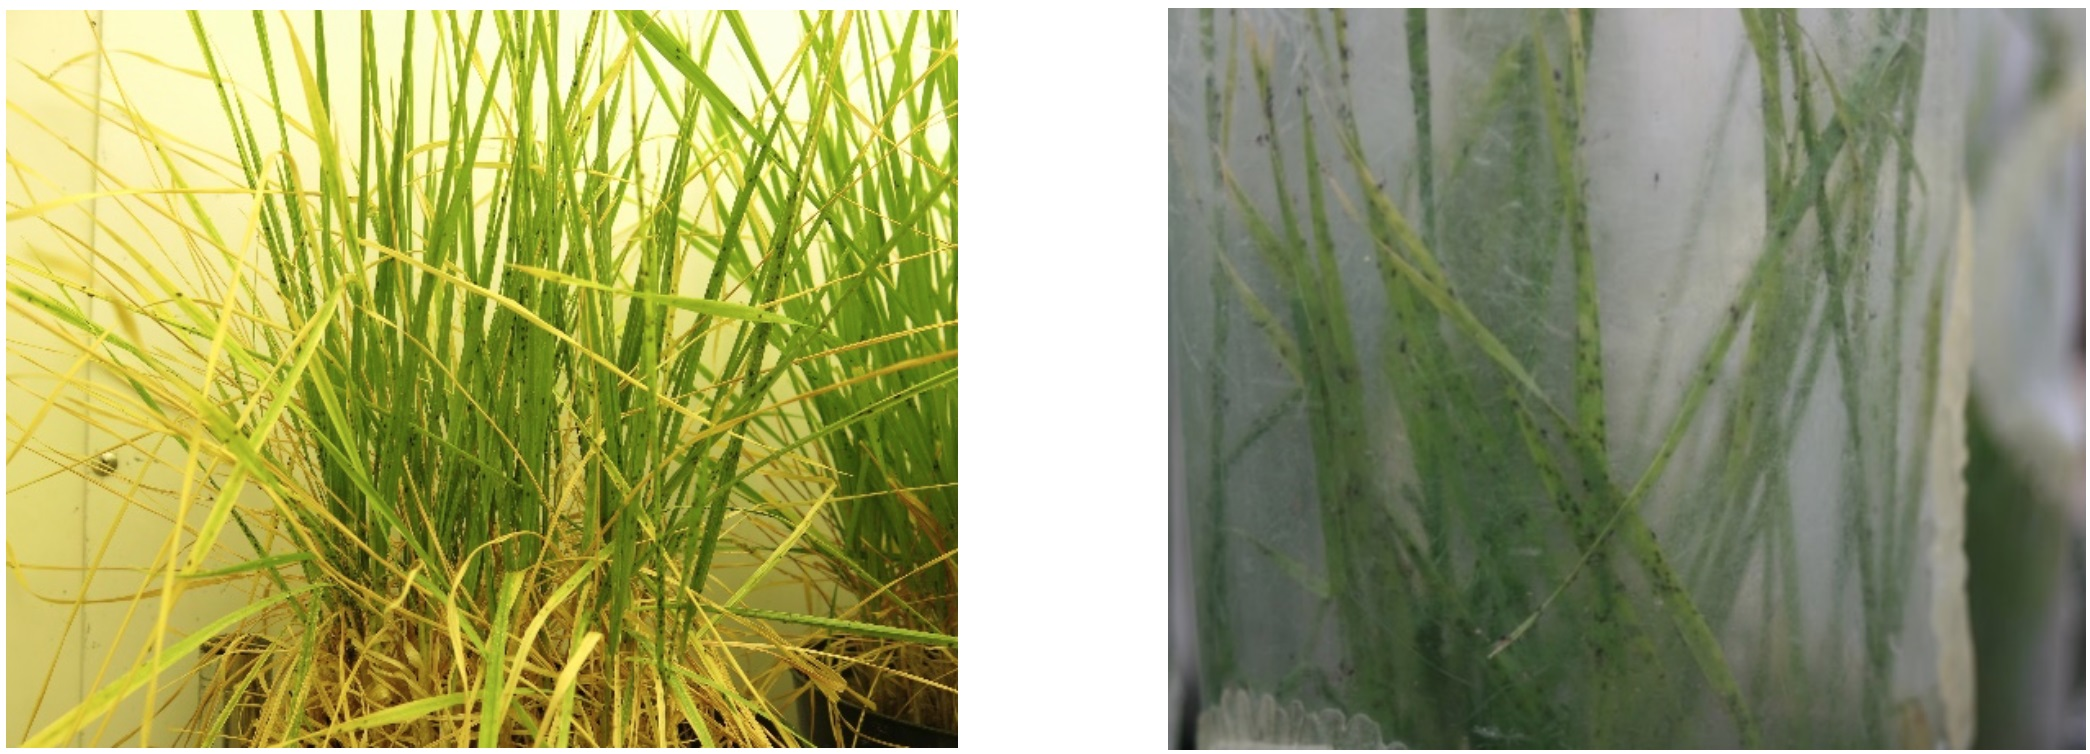 Plant damage from BCOA feeding in controlled-environment assays were consistent to previous evaluations on susceptible entries, such as Jagger (left). BCOA source colony maintained by Zarrabi and Giles (right).